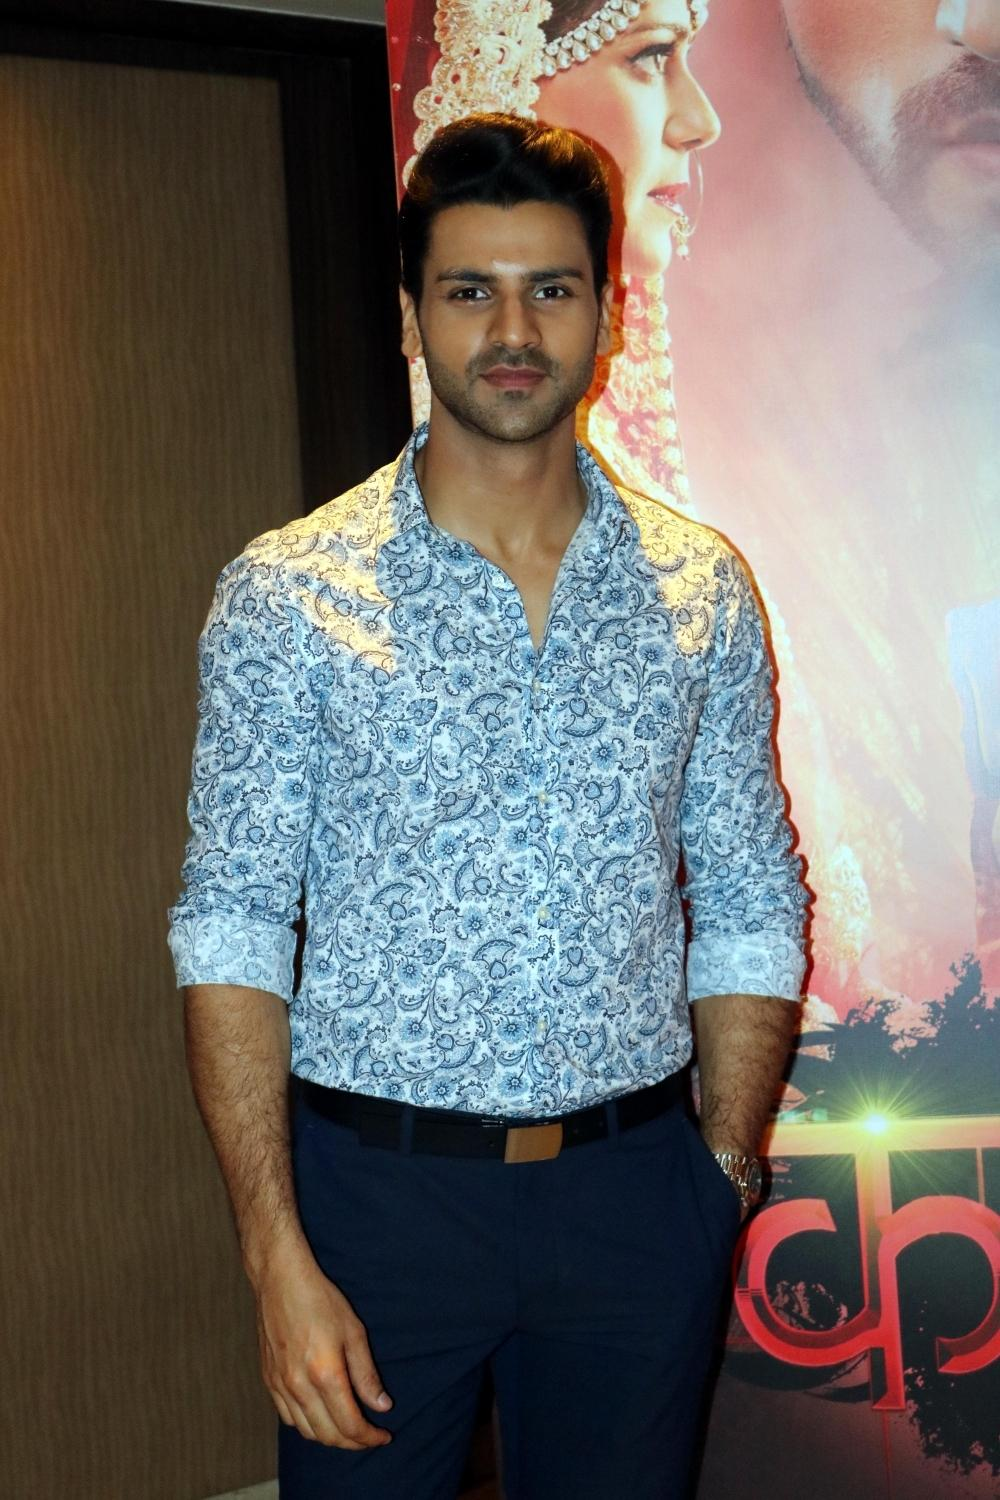 Mona Singh and Vivek Dahiya Promoted TV Show Kavach…Kaali Shaktiyon Se in New Delhi